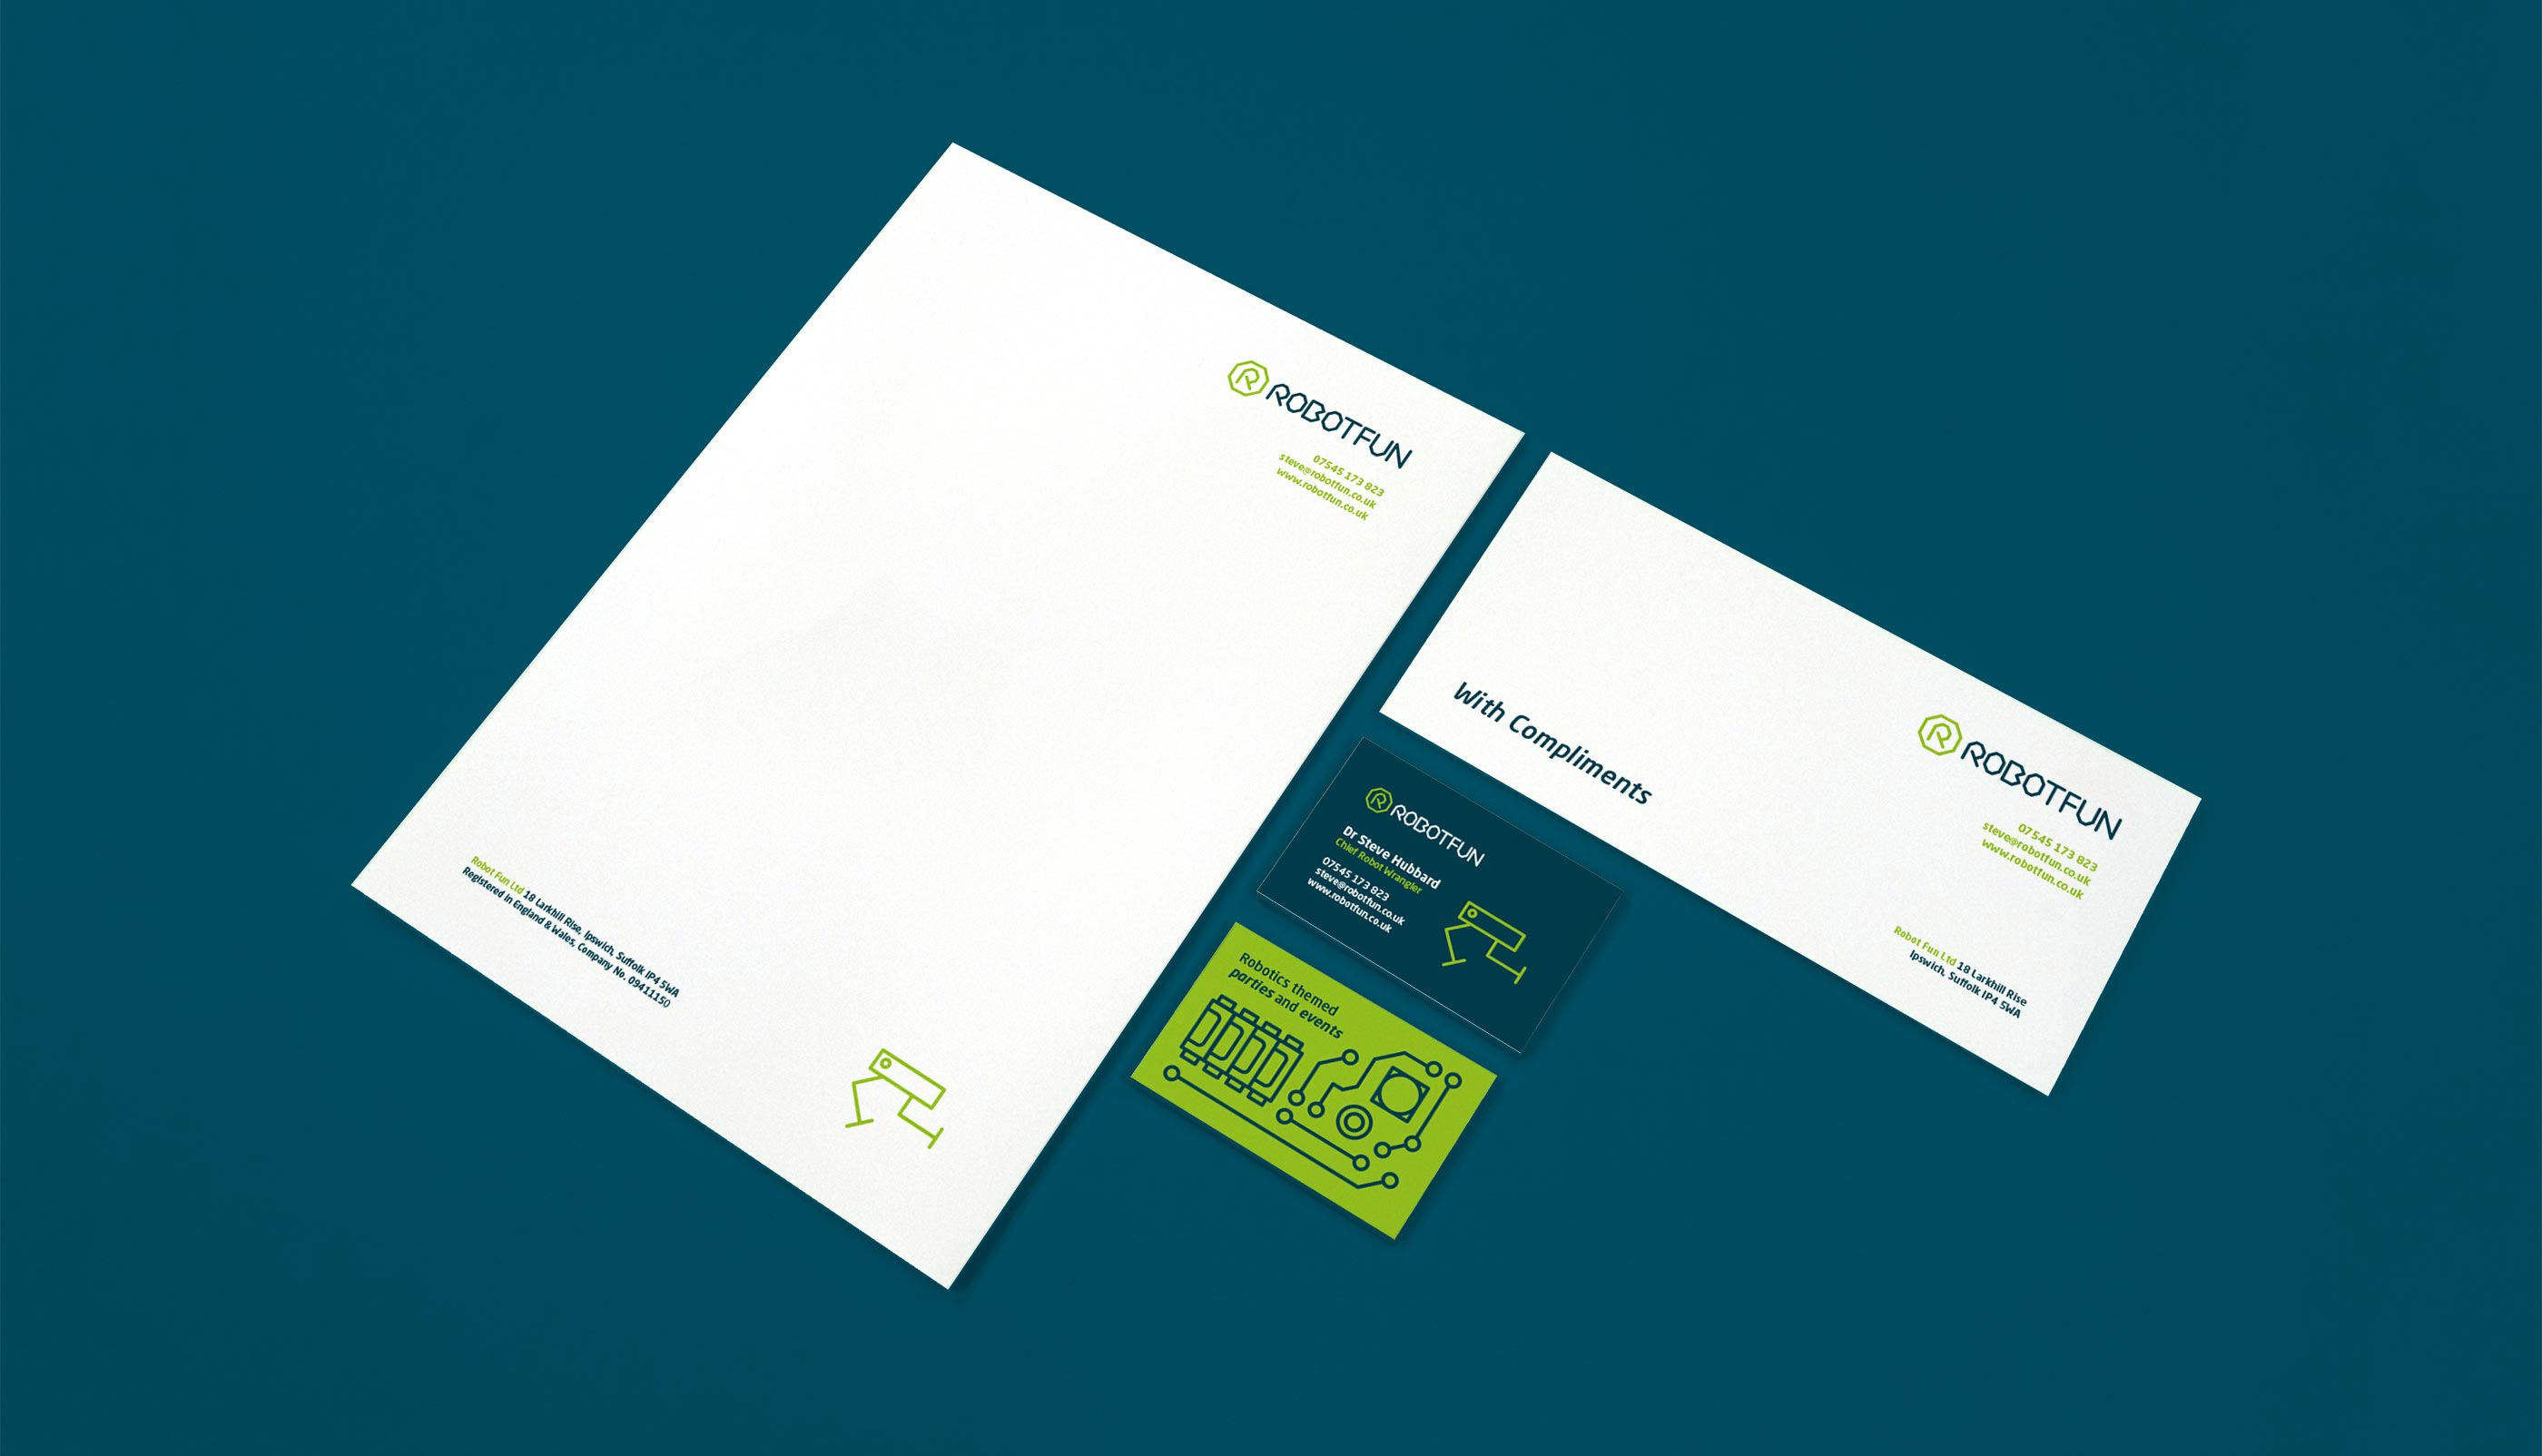 Stationery design and print for RobotFun in Ipswich, Suffolk.